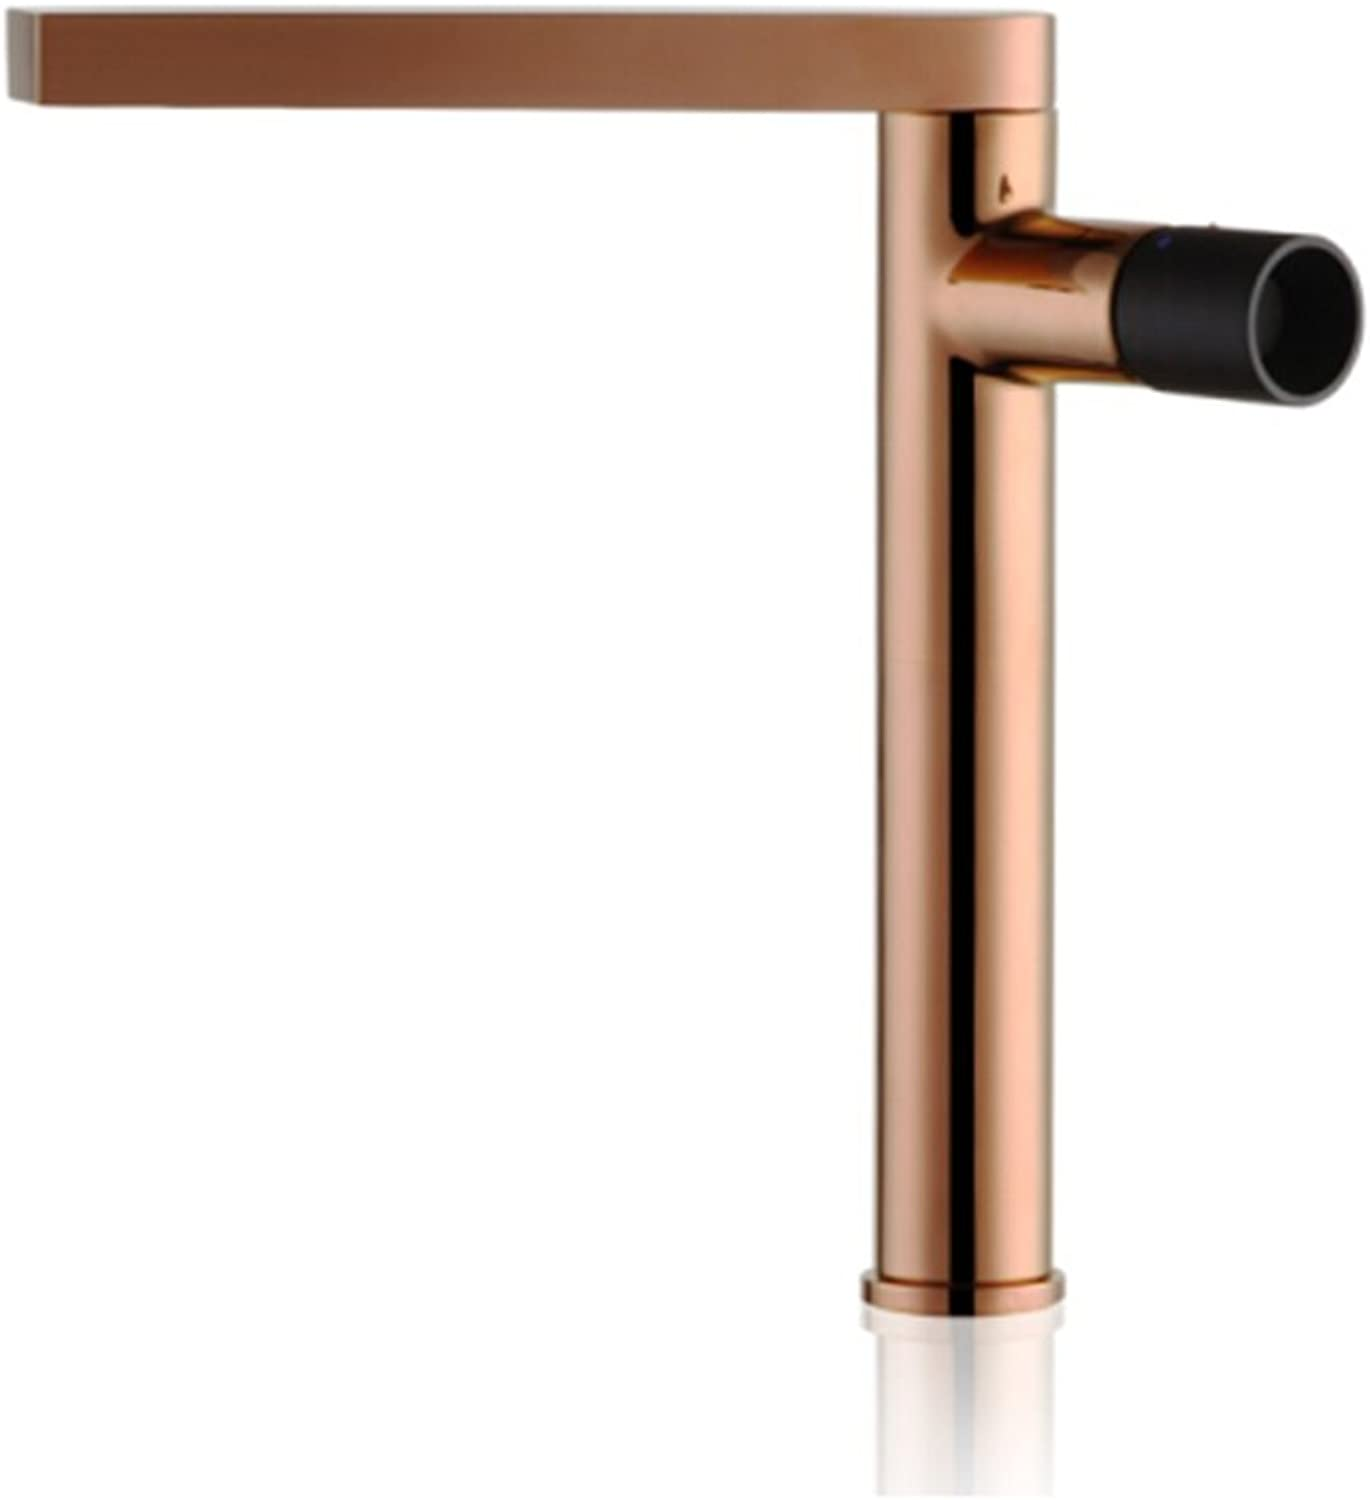 Xiaowenwen Fine copper redatable hot and cold basin faucet hand wash basin above counter basin bathroom faucet